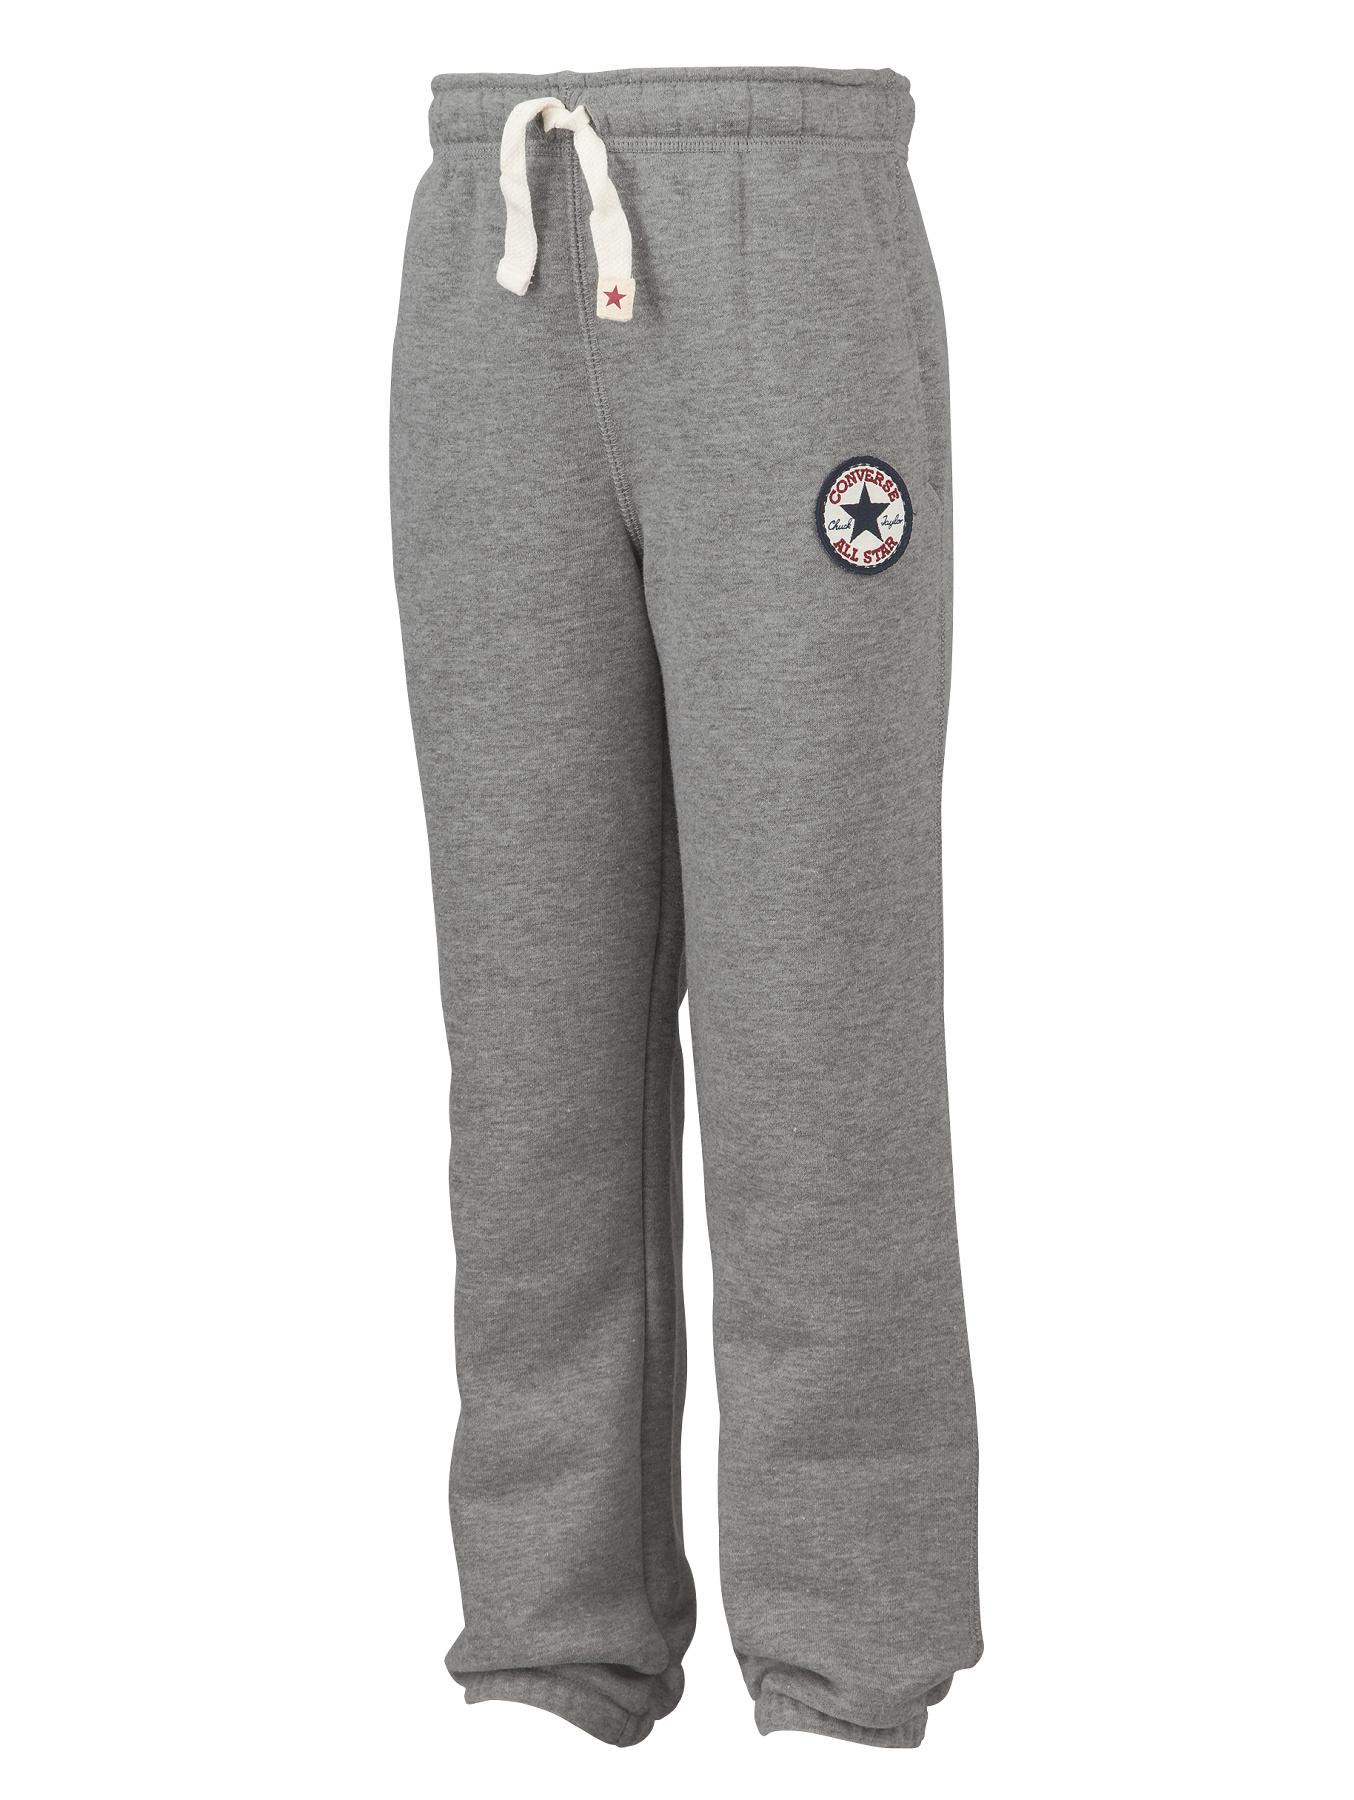 Little Boys Chuck Patch Fleece Pants - Grey Heather, Grey